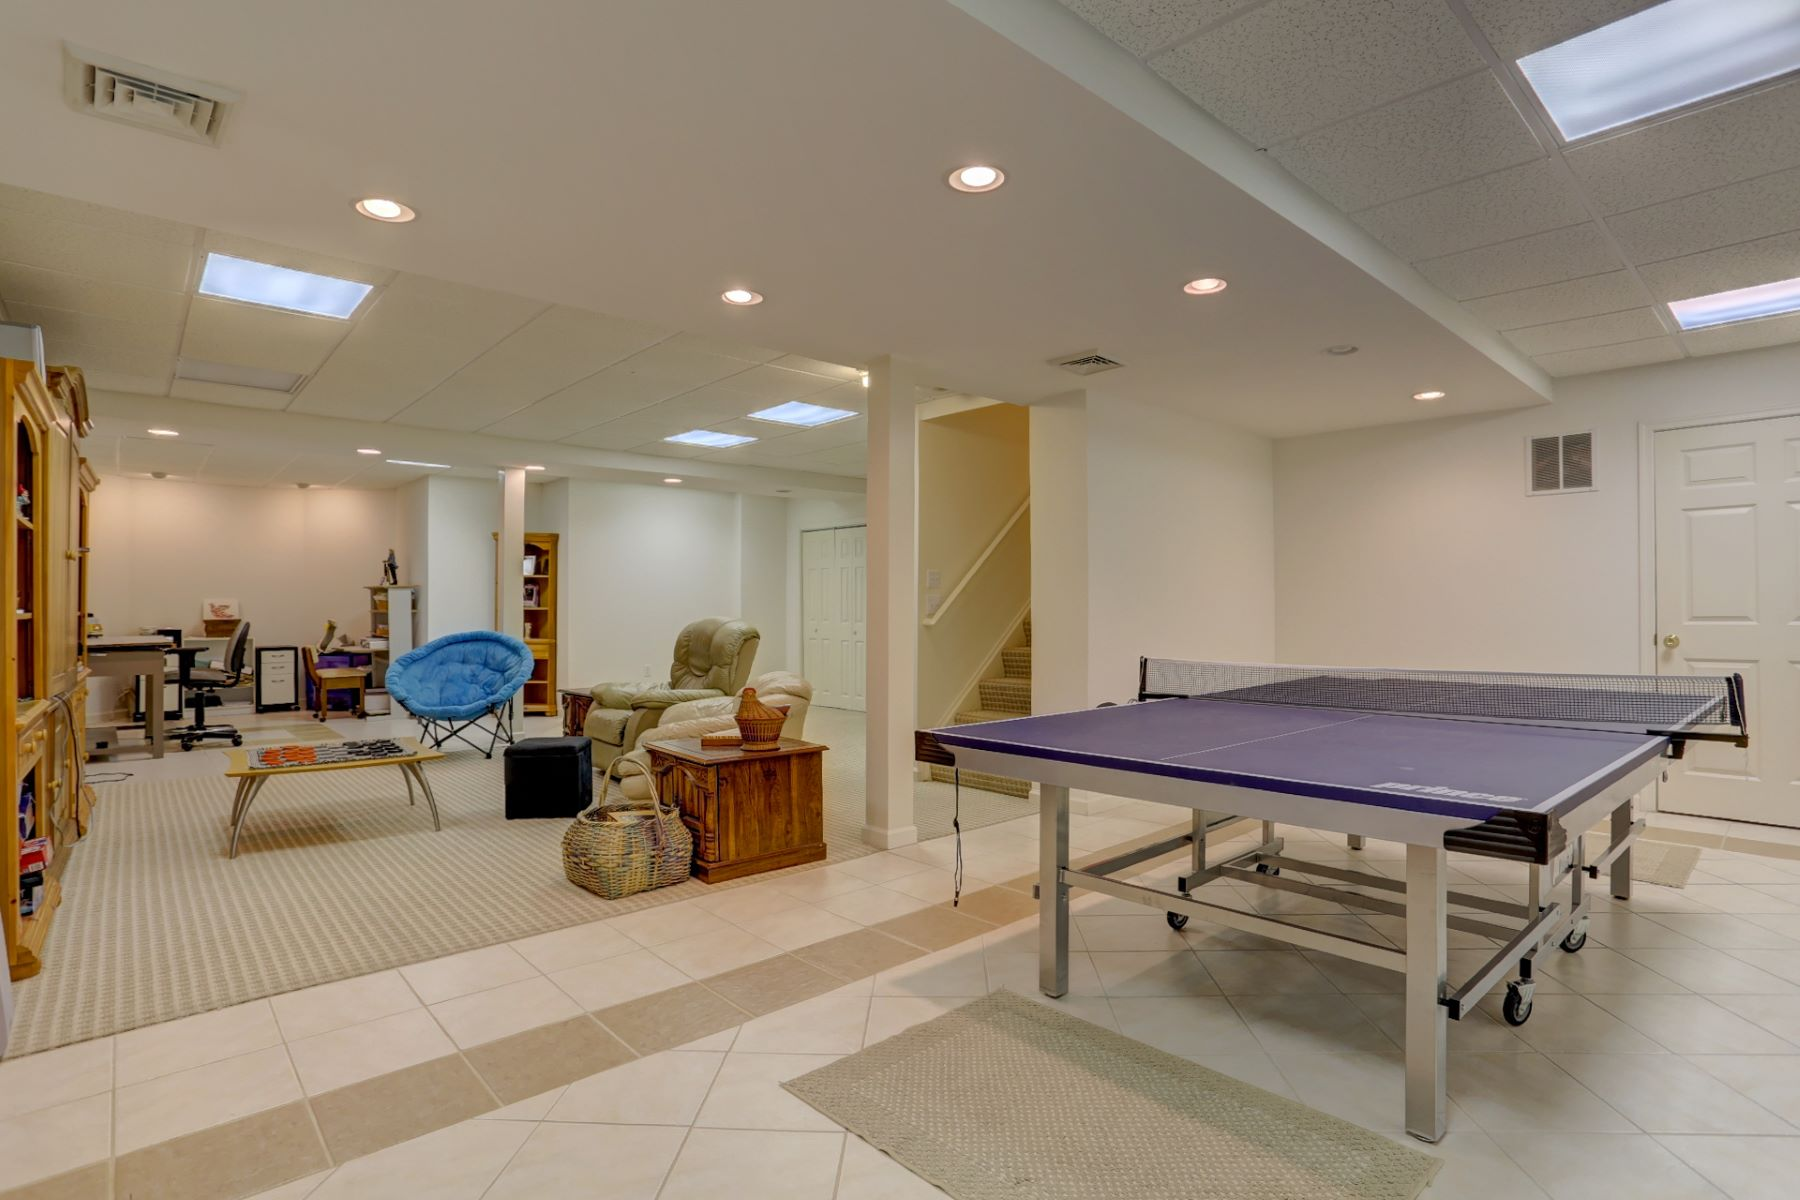 Additional photo for property listing at 821 Woodfield Drive  立提兹市, 宾夕法尼亚州 17543 美国